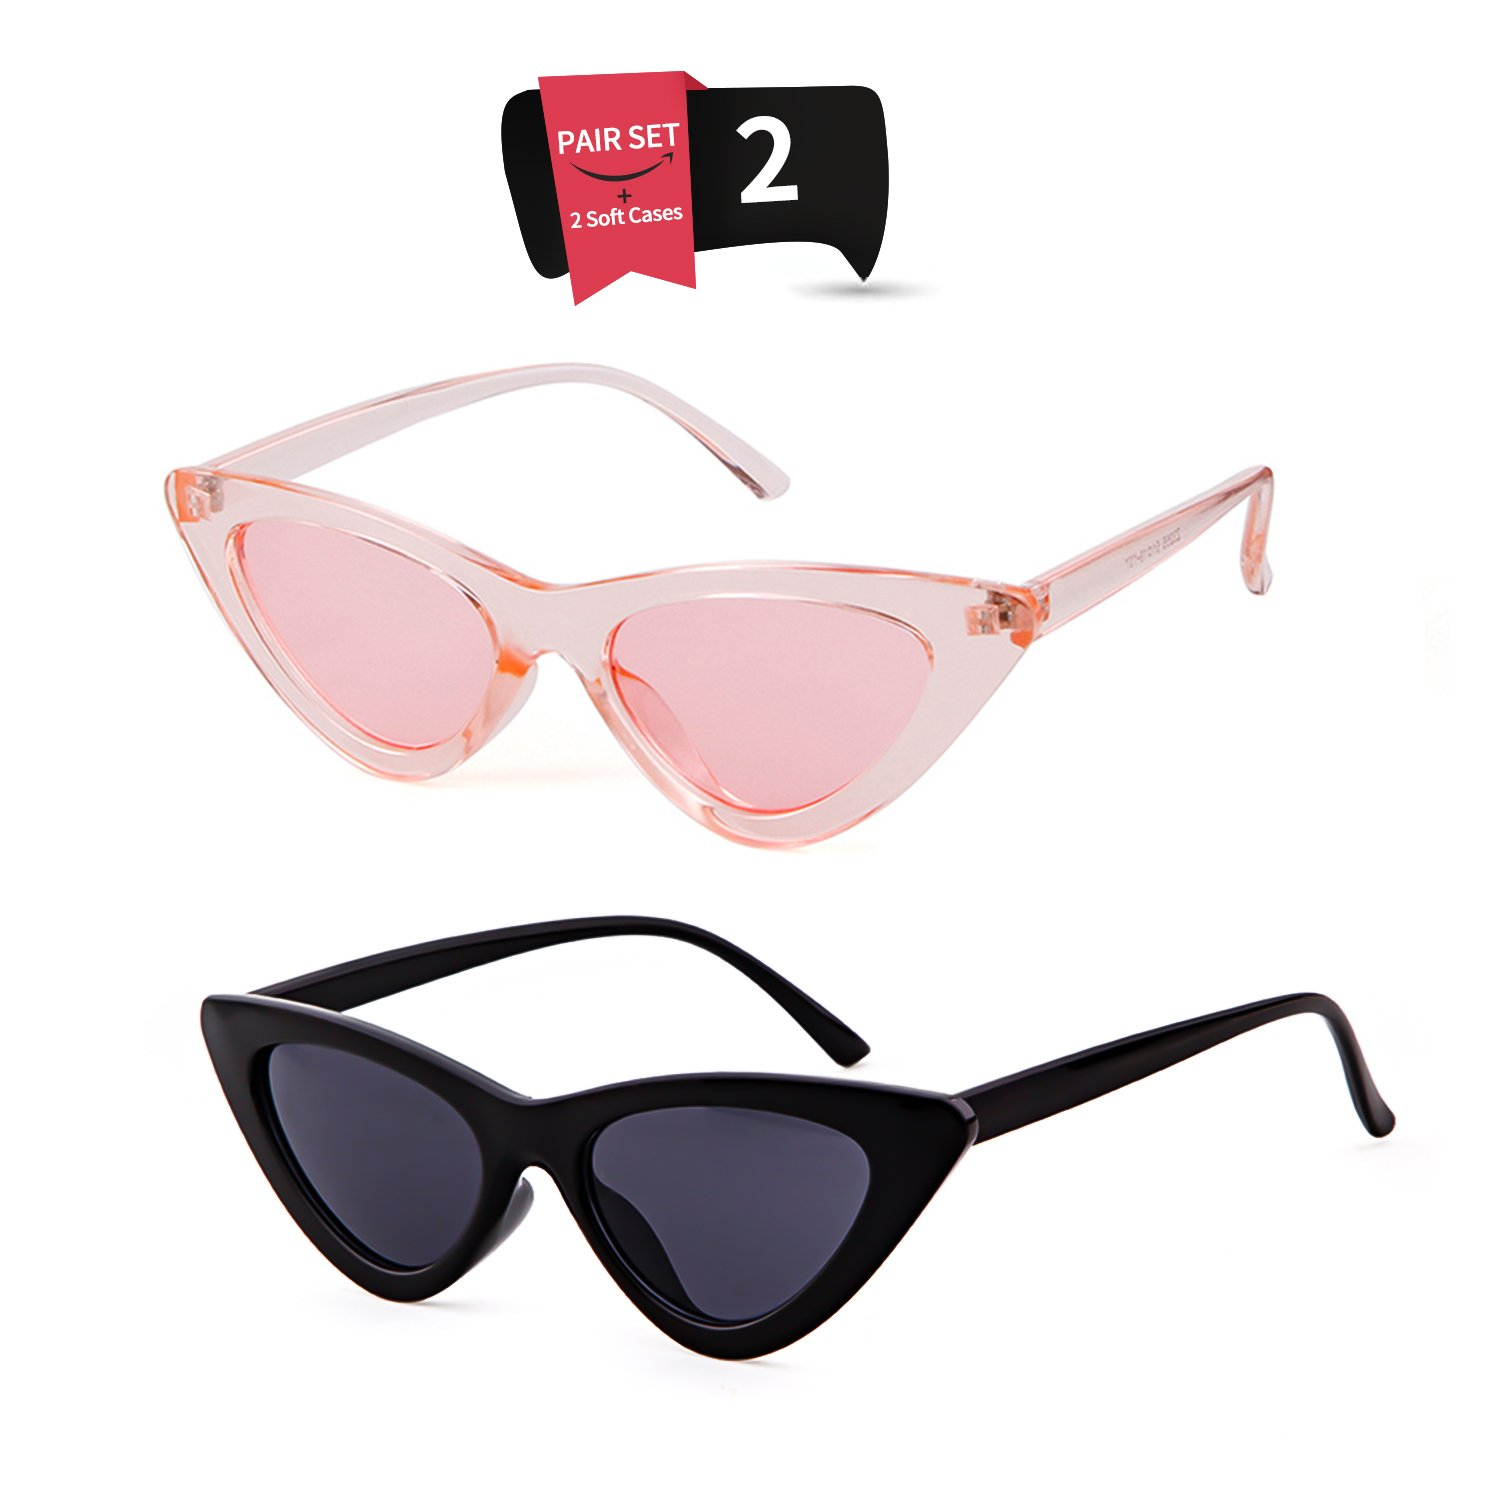 Gifiore Retro Vintage Cat Eye Sunglasses for Women Clout Goggles Plastic Frame Glasses (Black&Pink, 51)